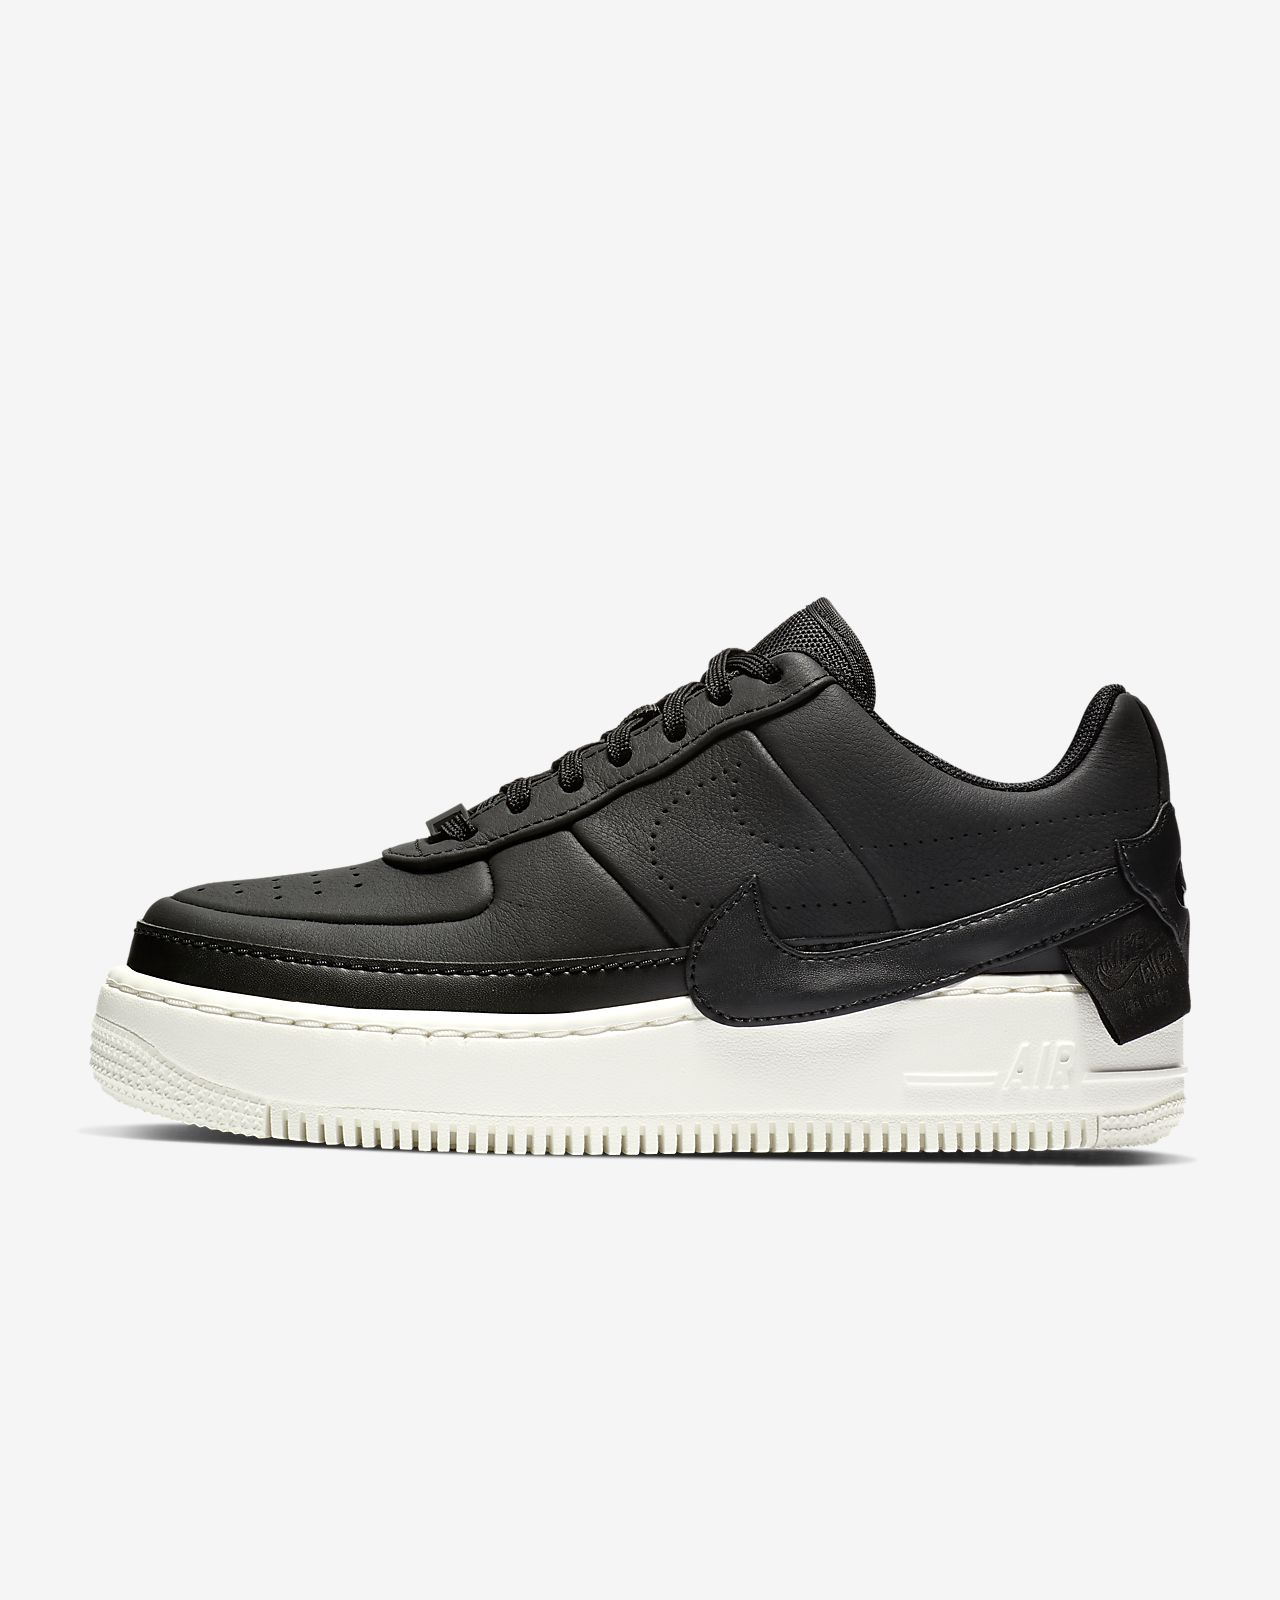 Nike Air Force 1 Jester XX Premium 女鞋